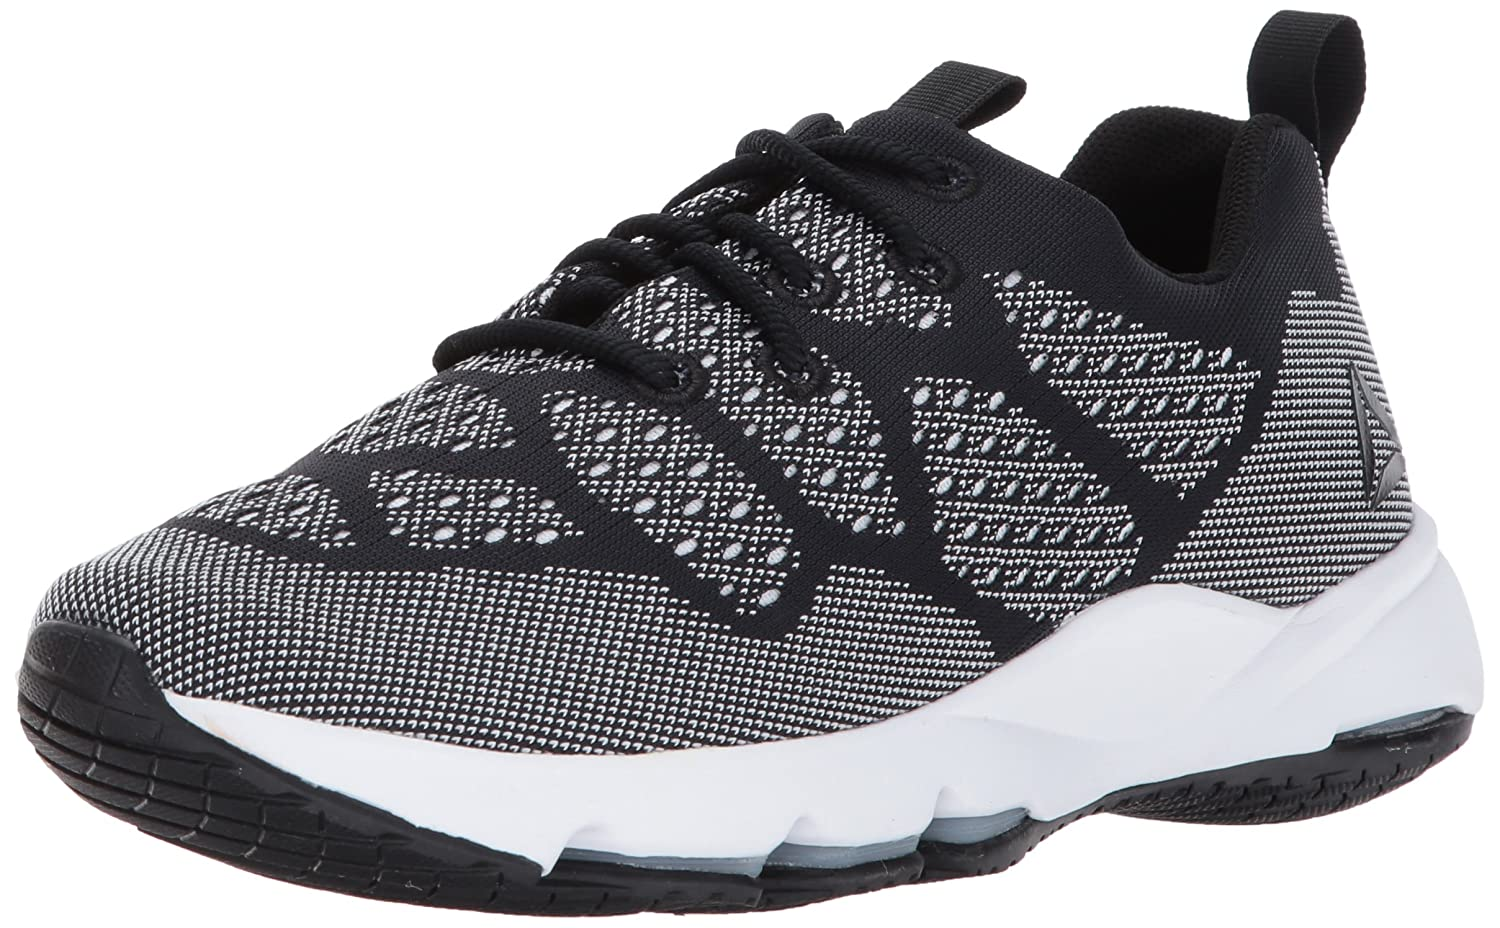 Reebok Women's Cloudride LS DMX Walking Shoe B01MR2RCD5 9.5 B(M) US|Black/White